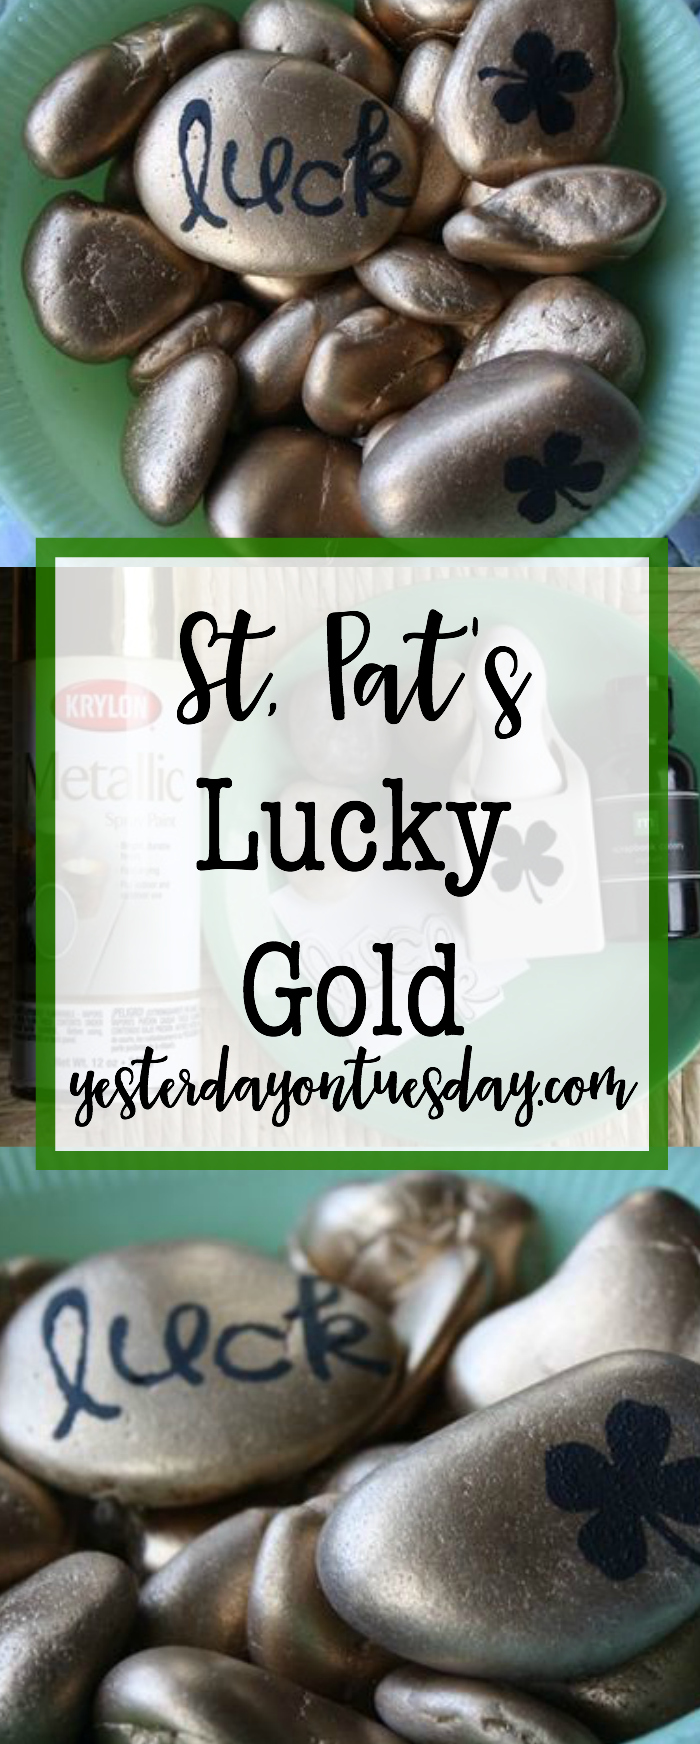 St. Pat's Lucky Gold: Festive decor projects for St. Patrick's Day, sure to bring you good luck!